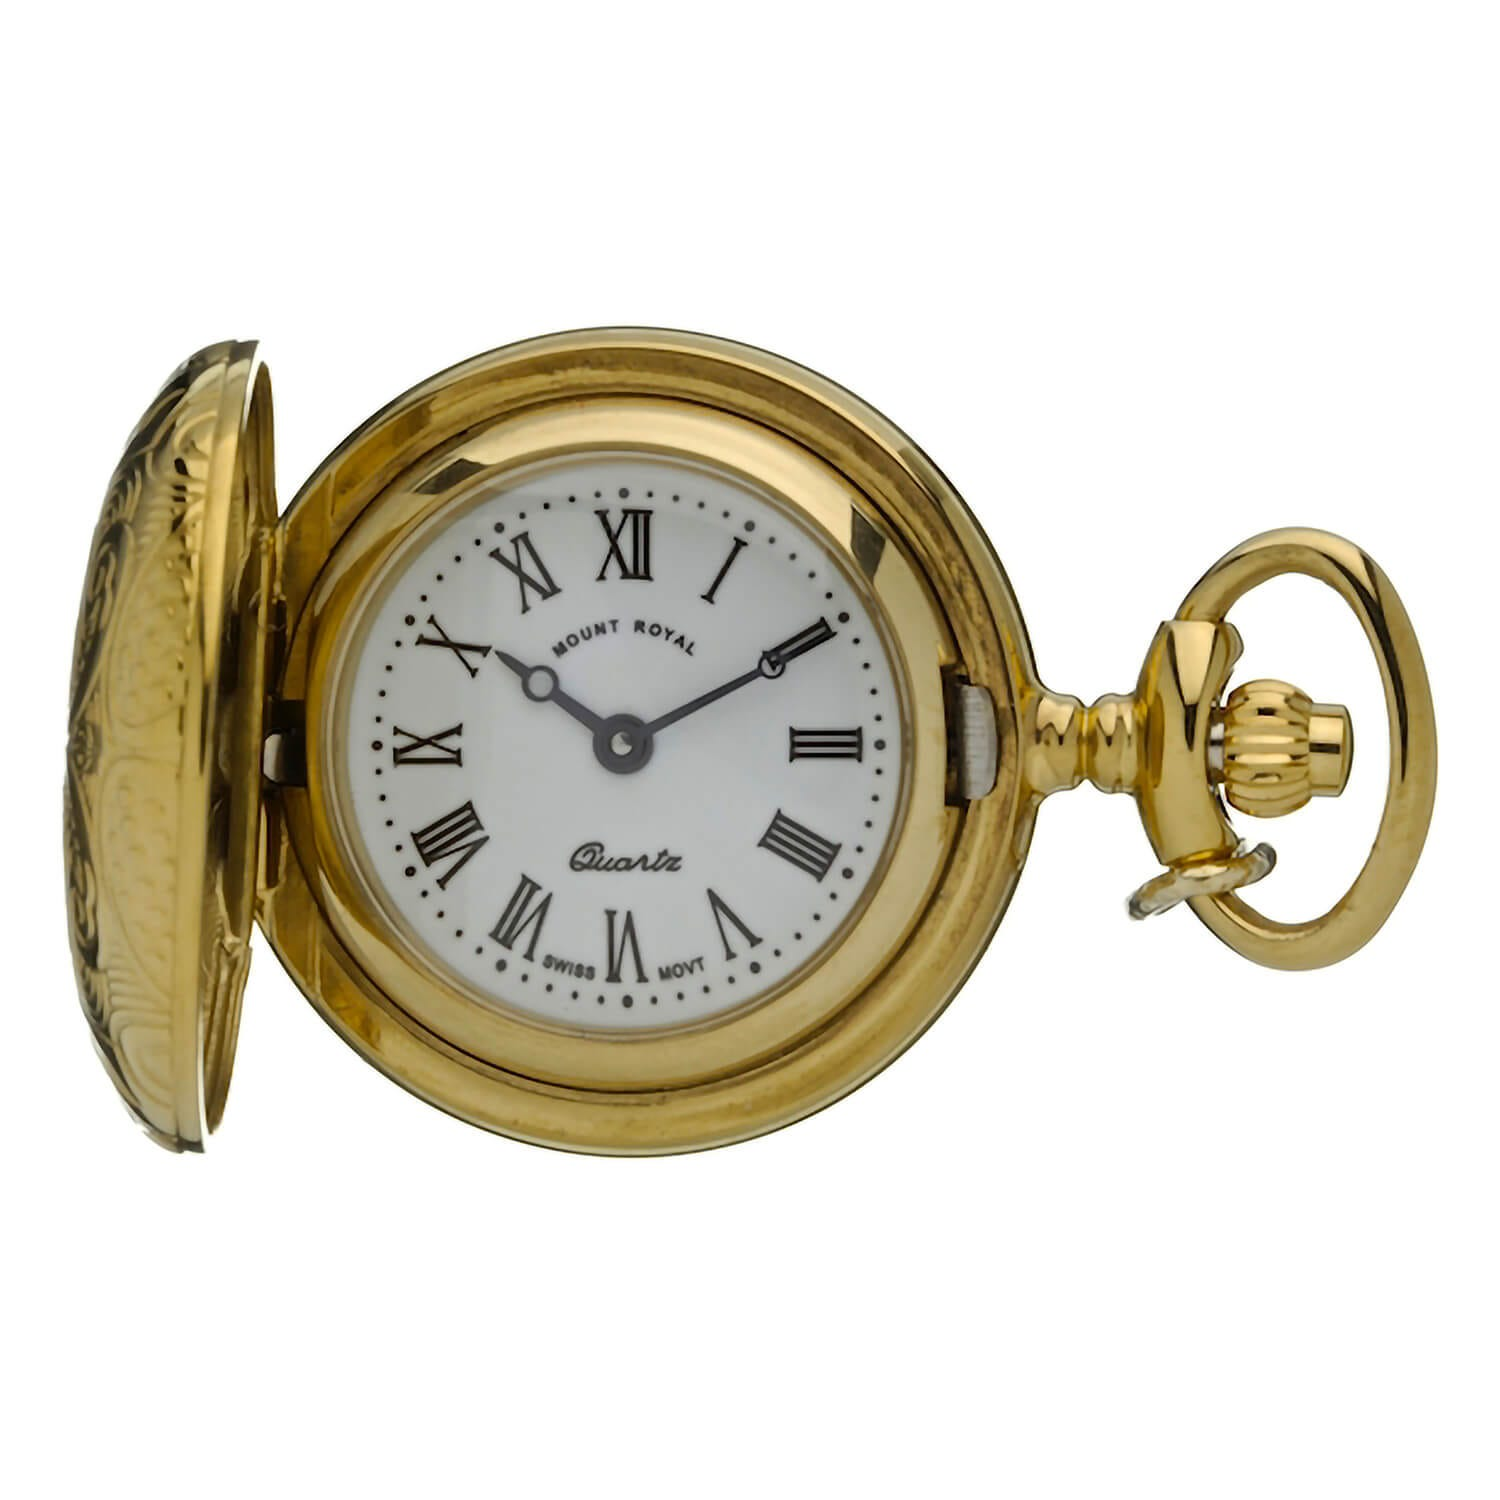 Ladies Mount Royal Pocket Watch